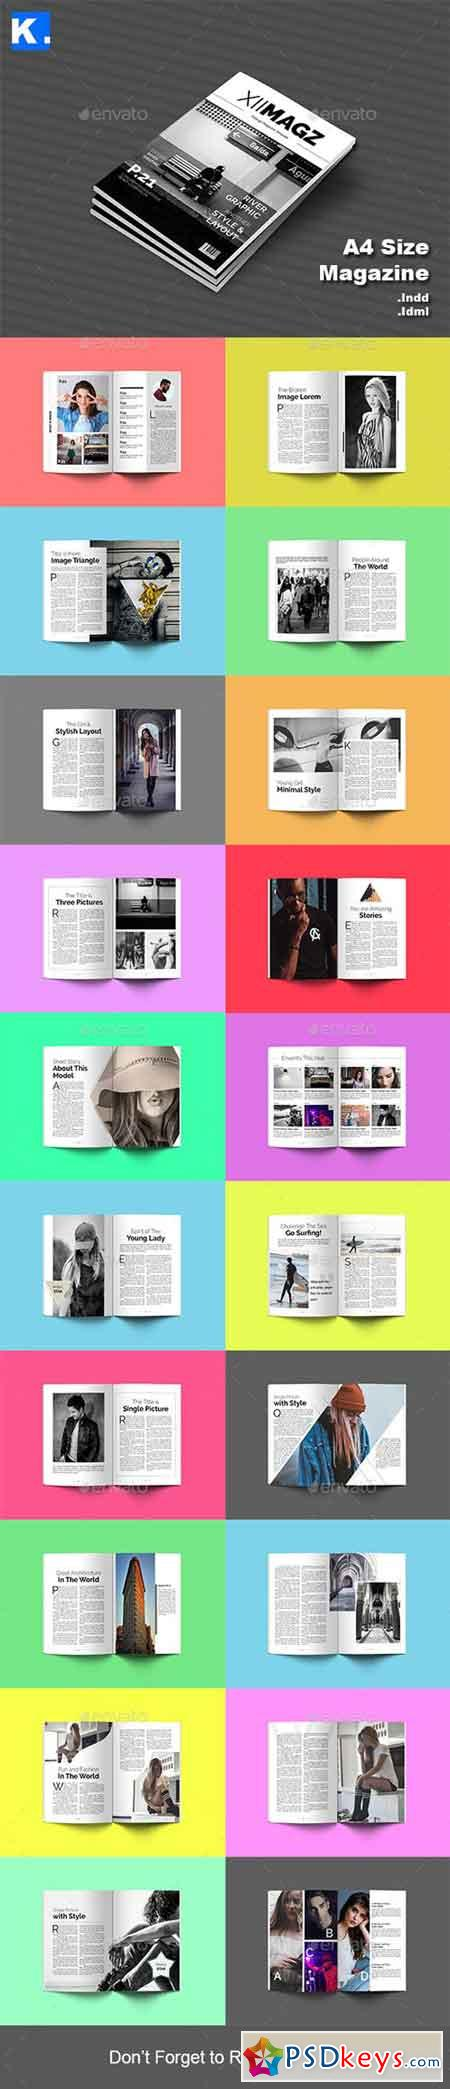 Indesign Magazine Template 4 20944565 » Free Download Photoshop ...